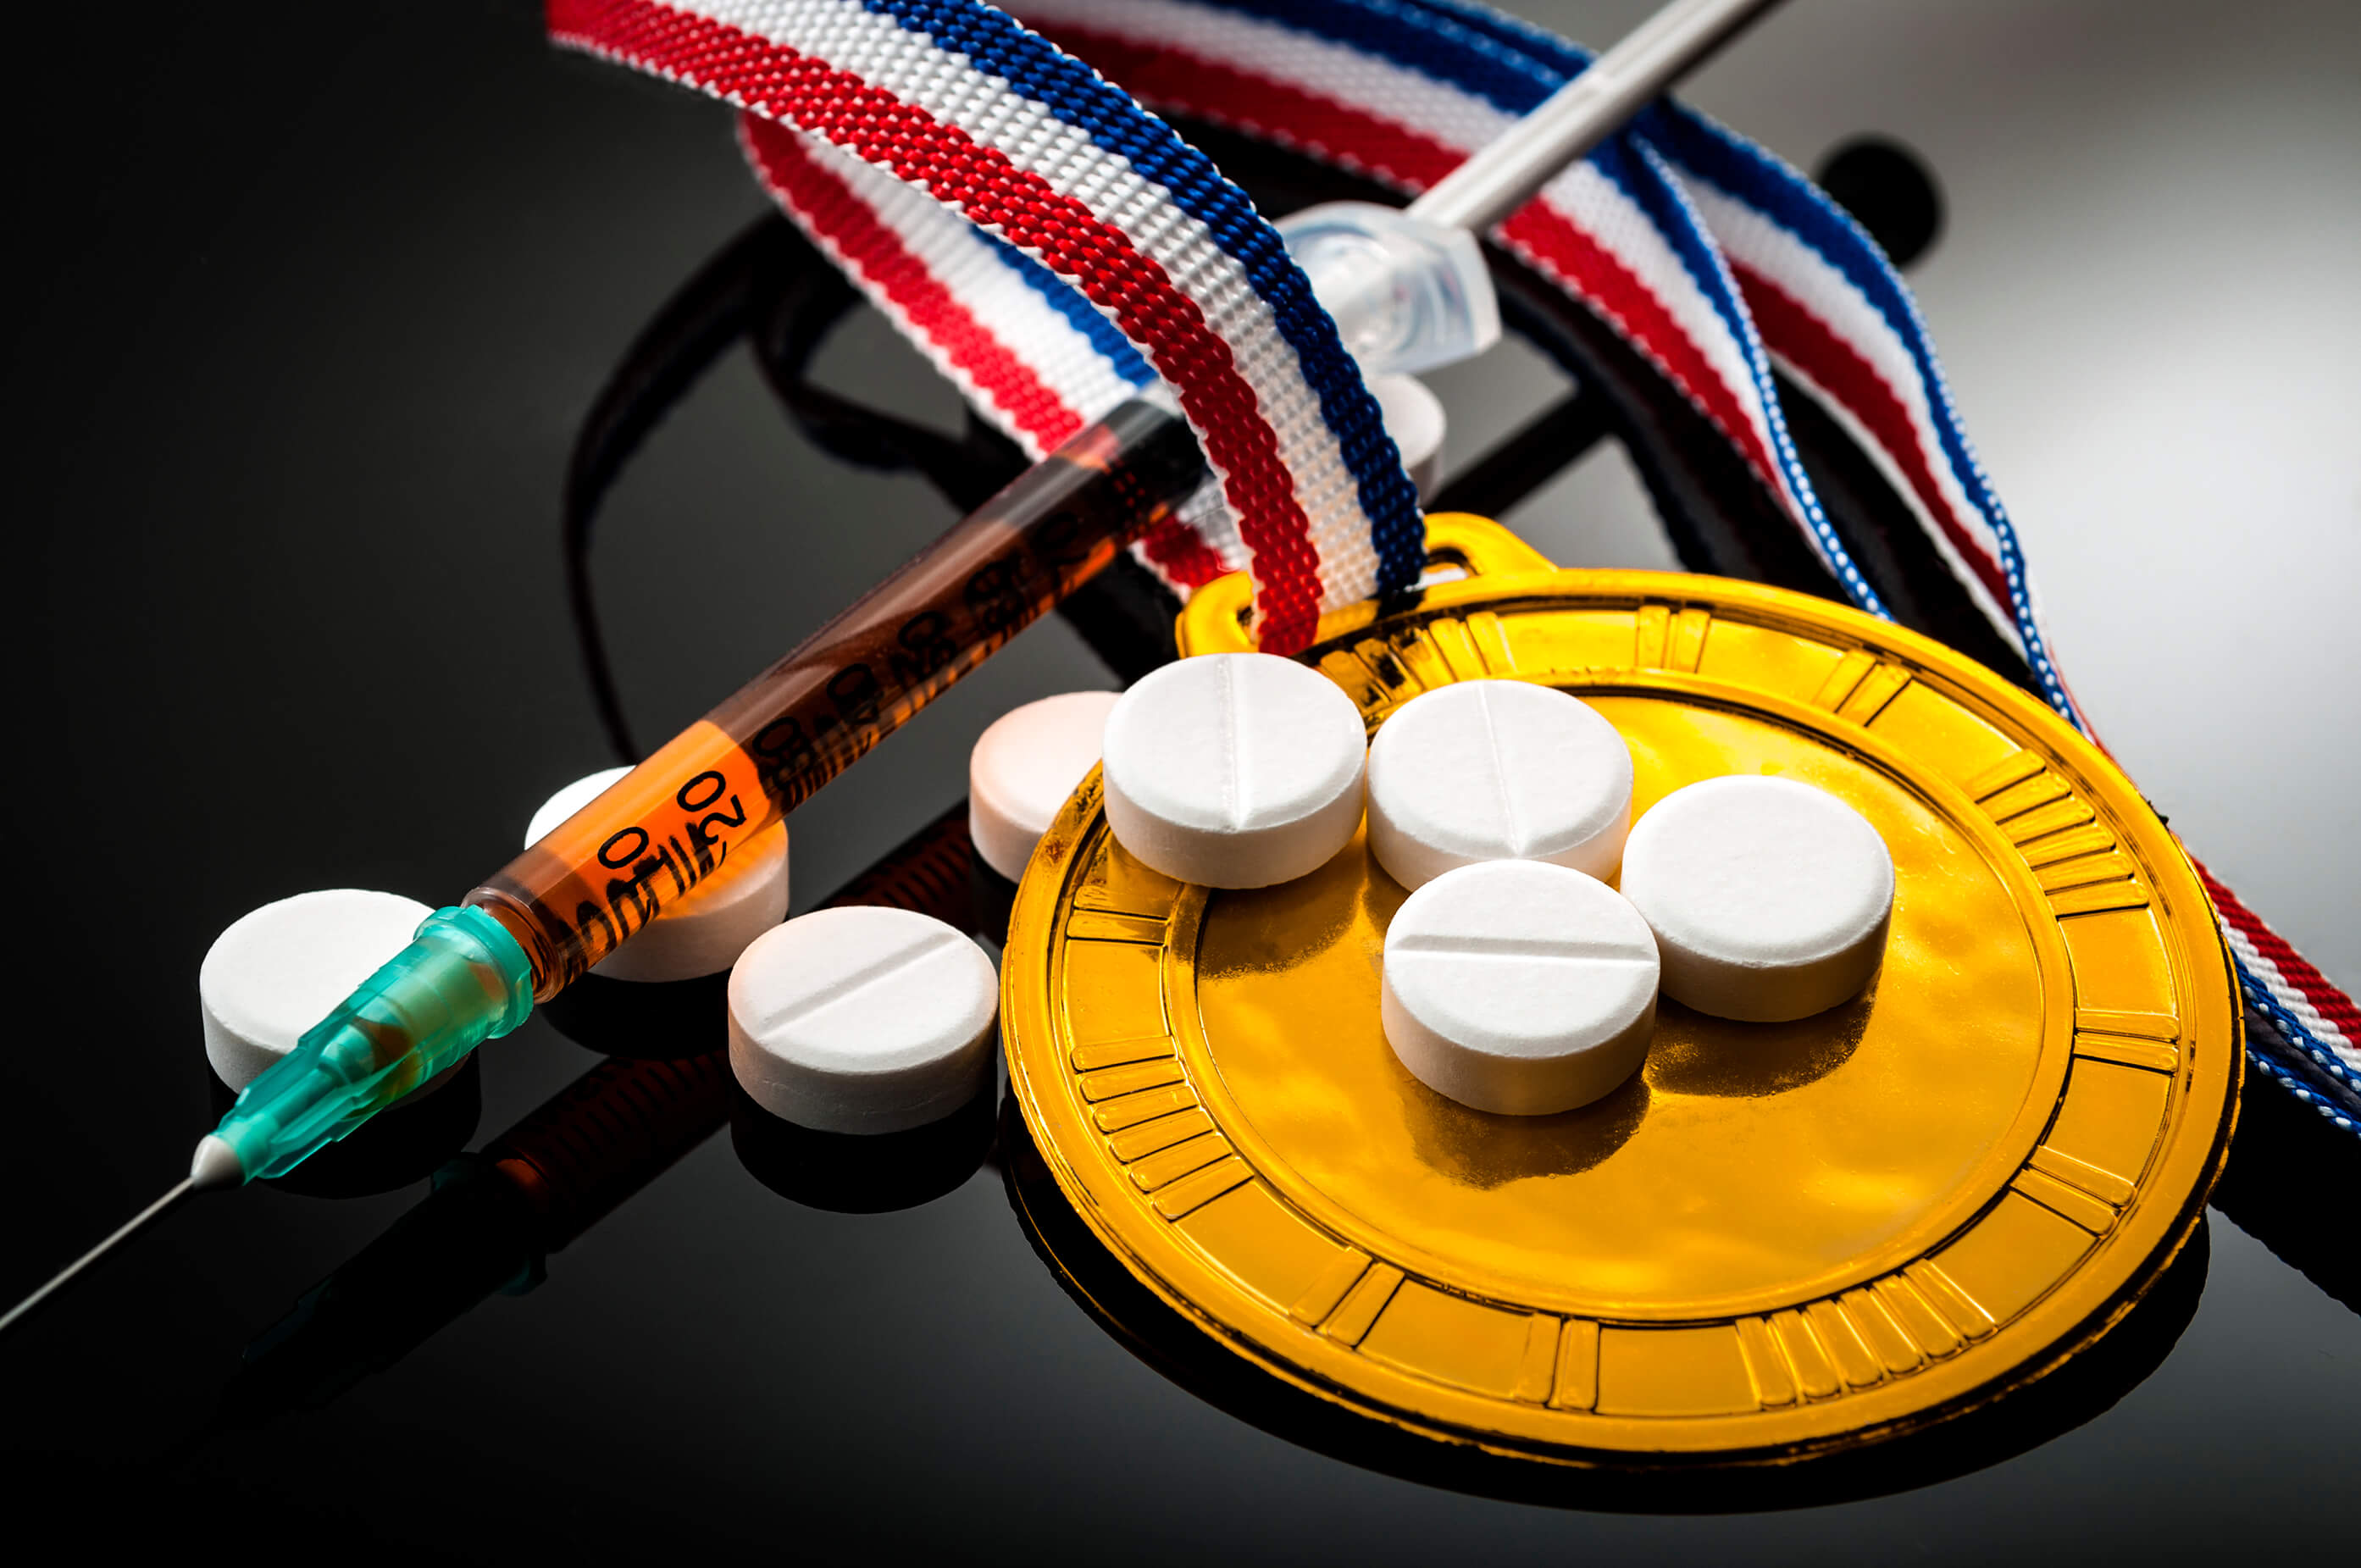 Athletes medal, pills and dope injection